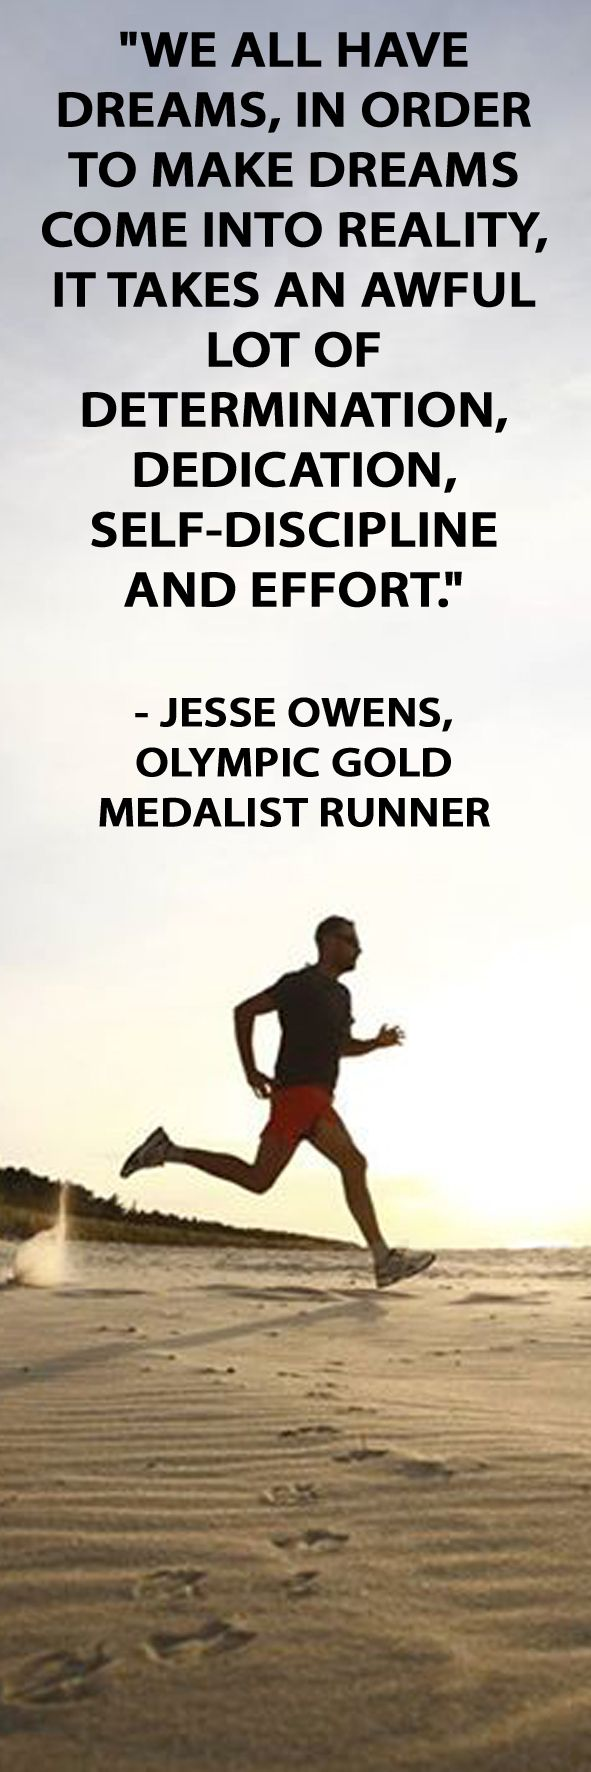 187 Best Marathon Motivation Images On Pinterest